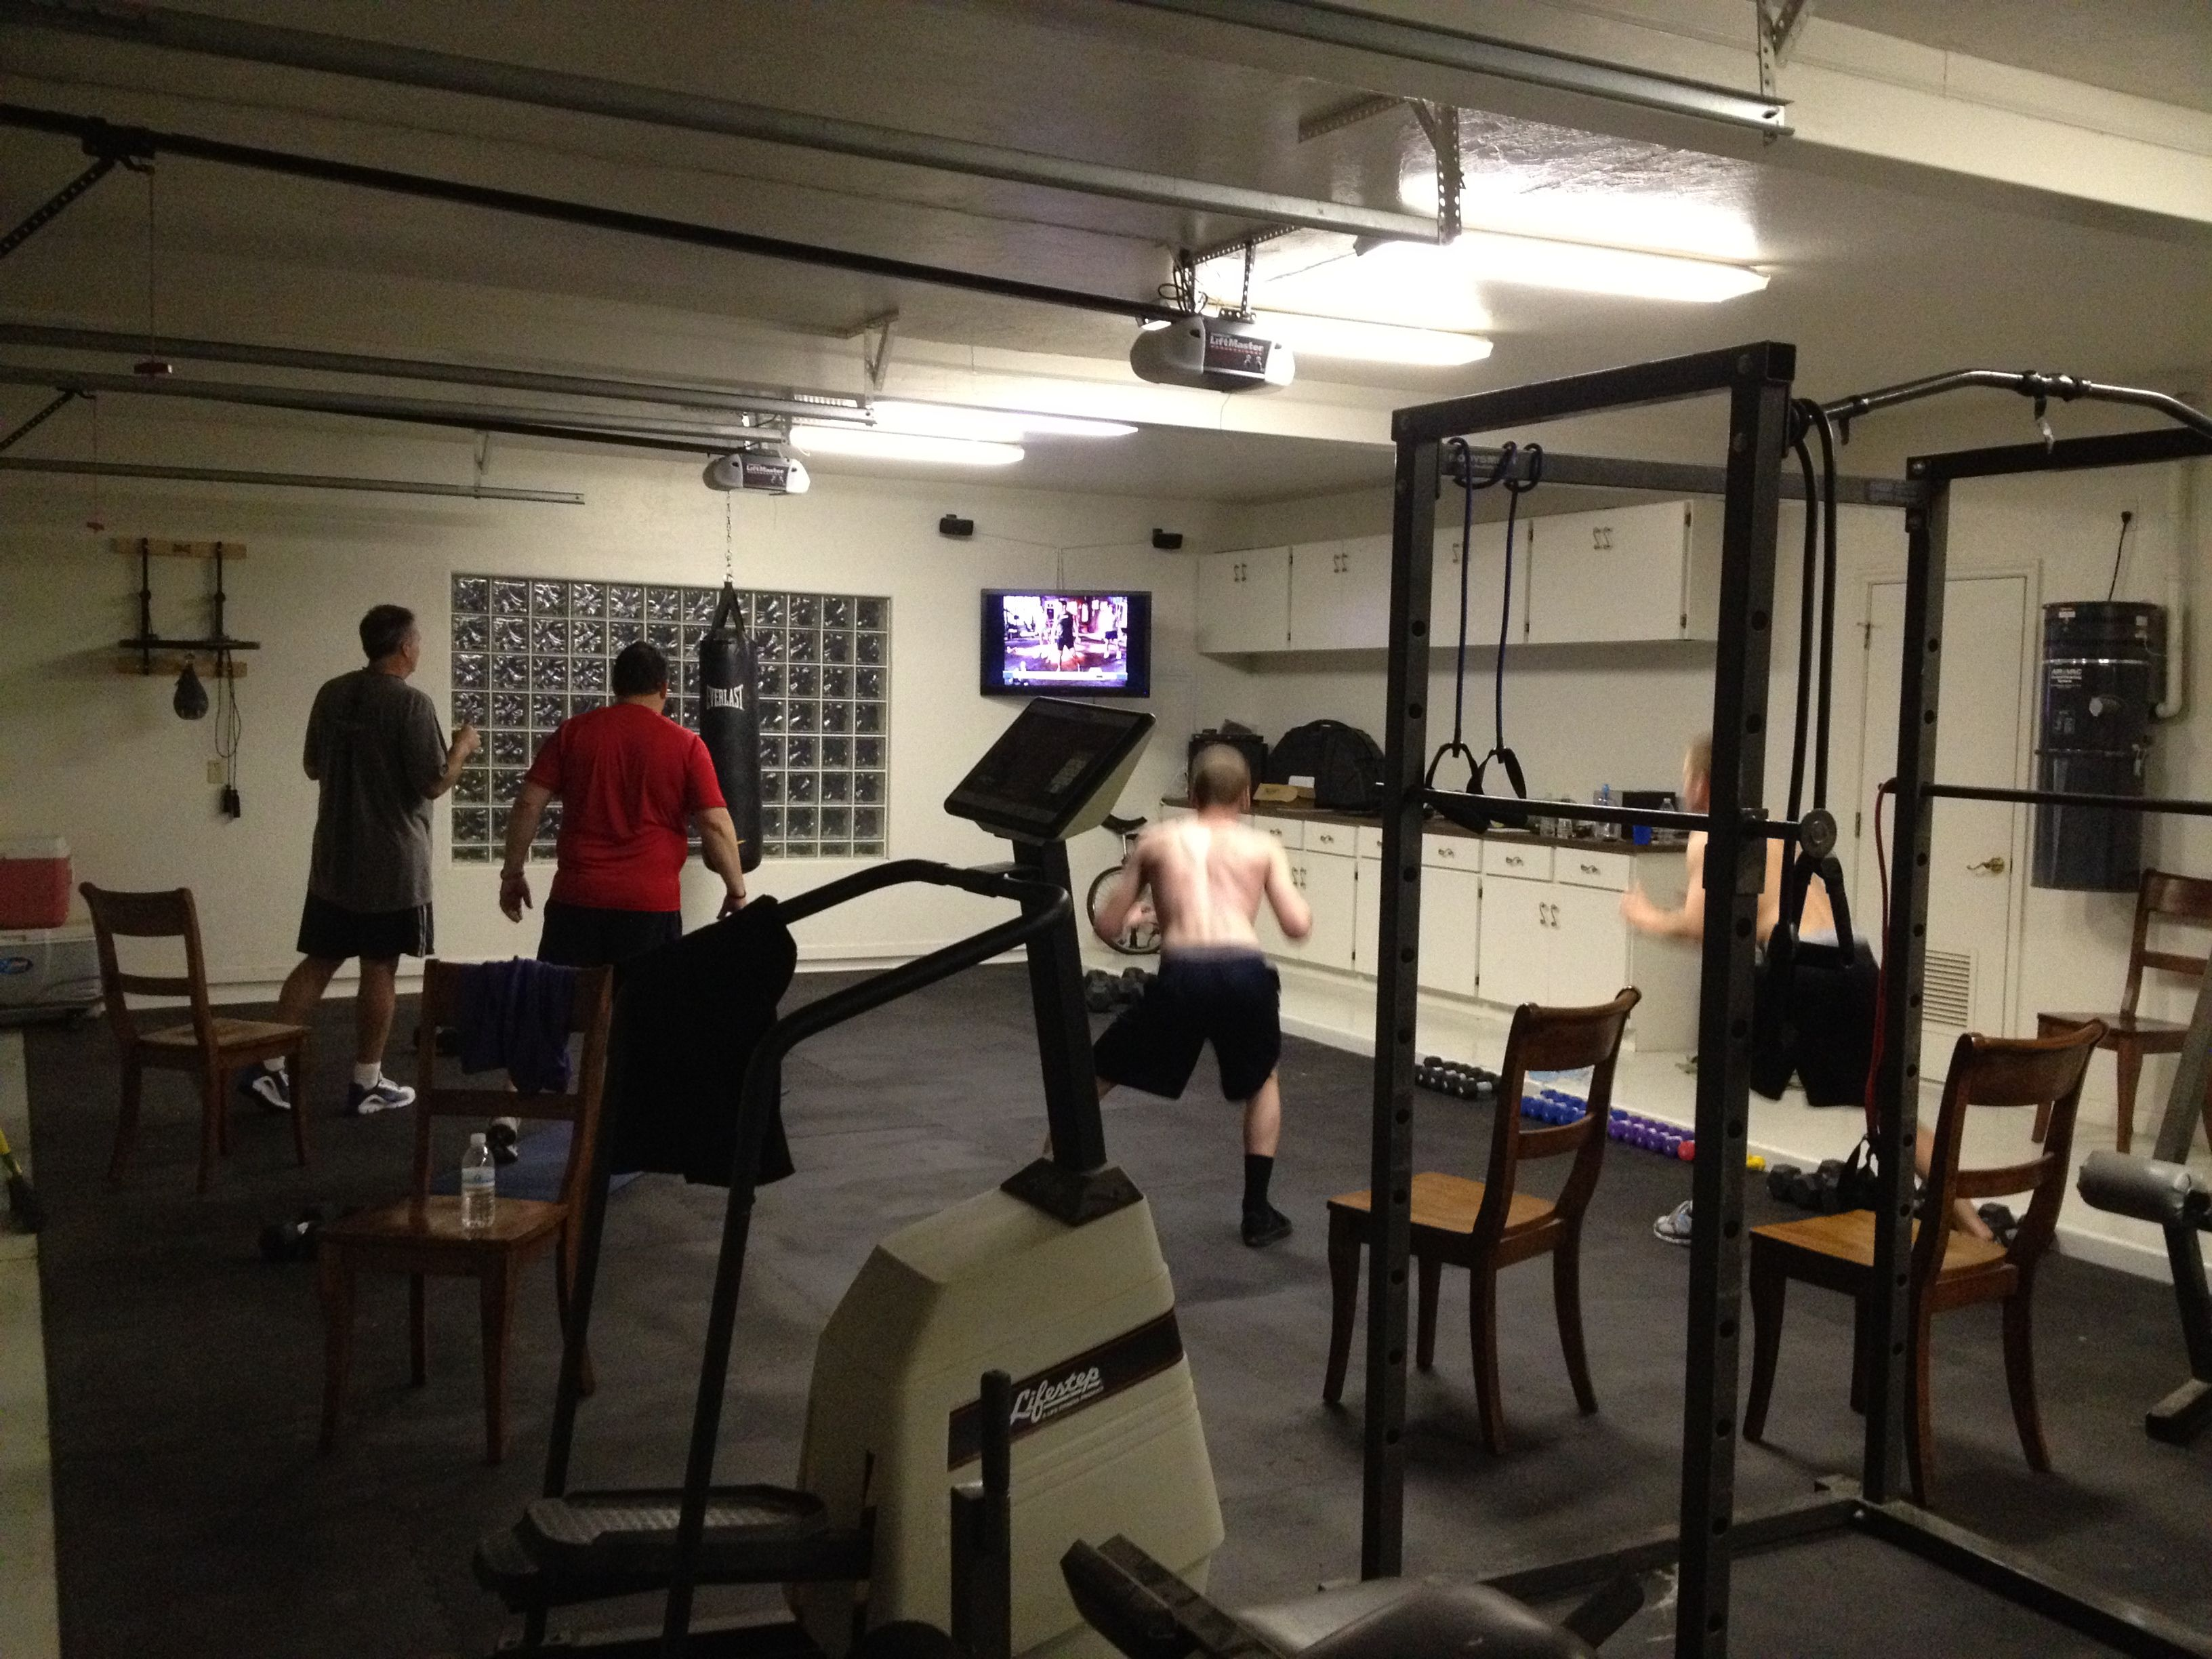 Working out in with p90x & insanity in the garage! healthy living